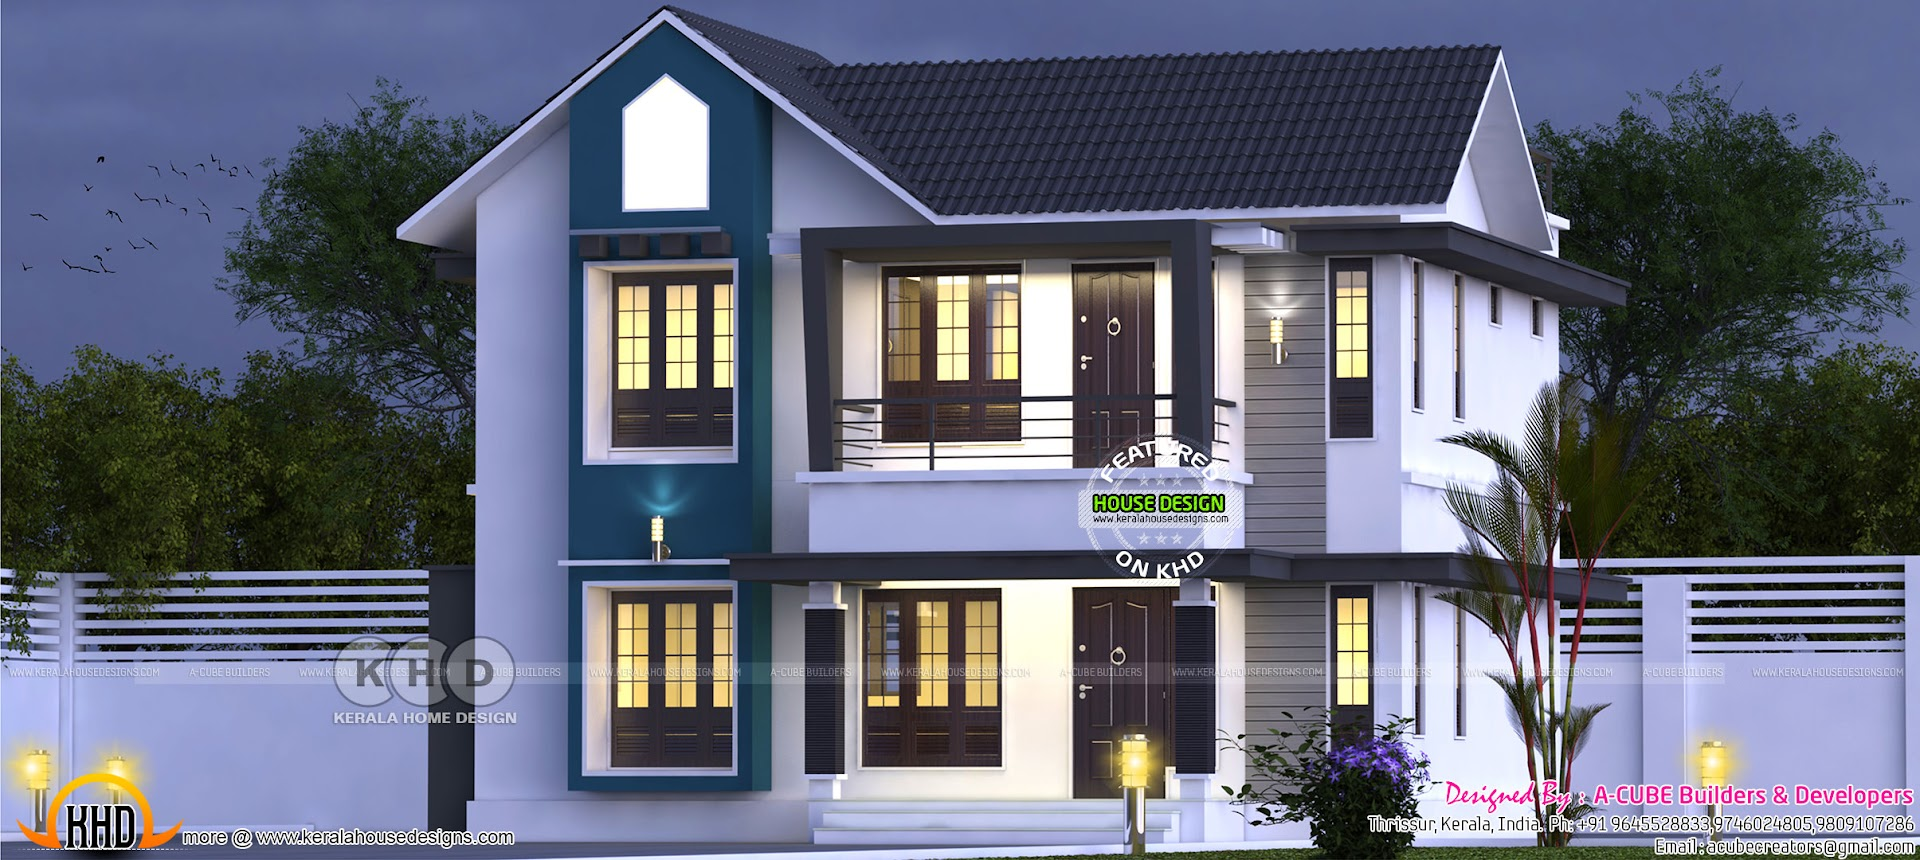 Sloped Roof Modern House 1572 Sq Ft Kerala Home Design And Floor Plans 8000 Houses